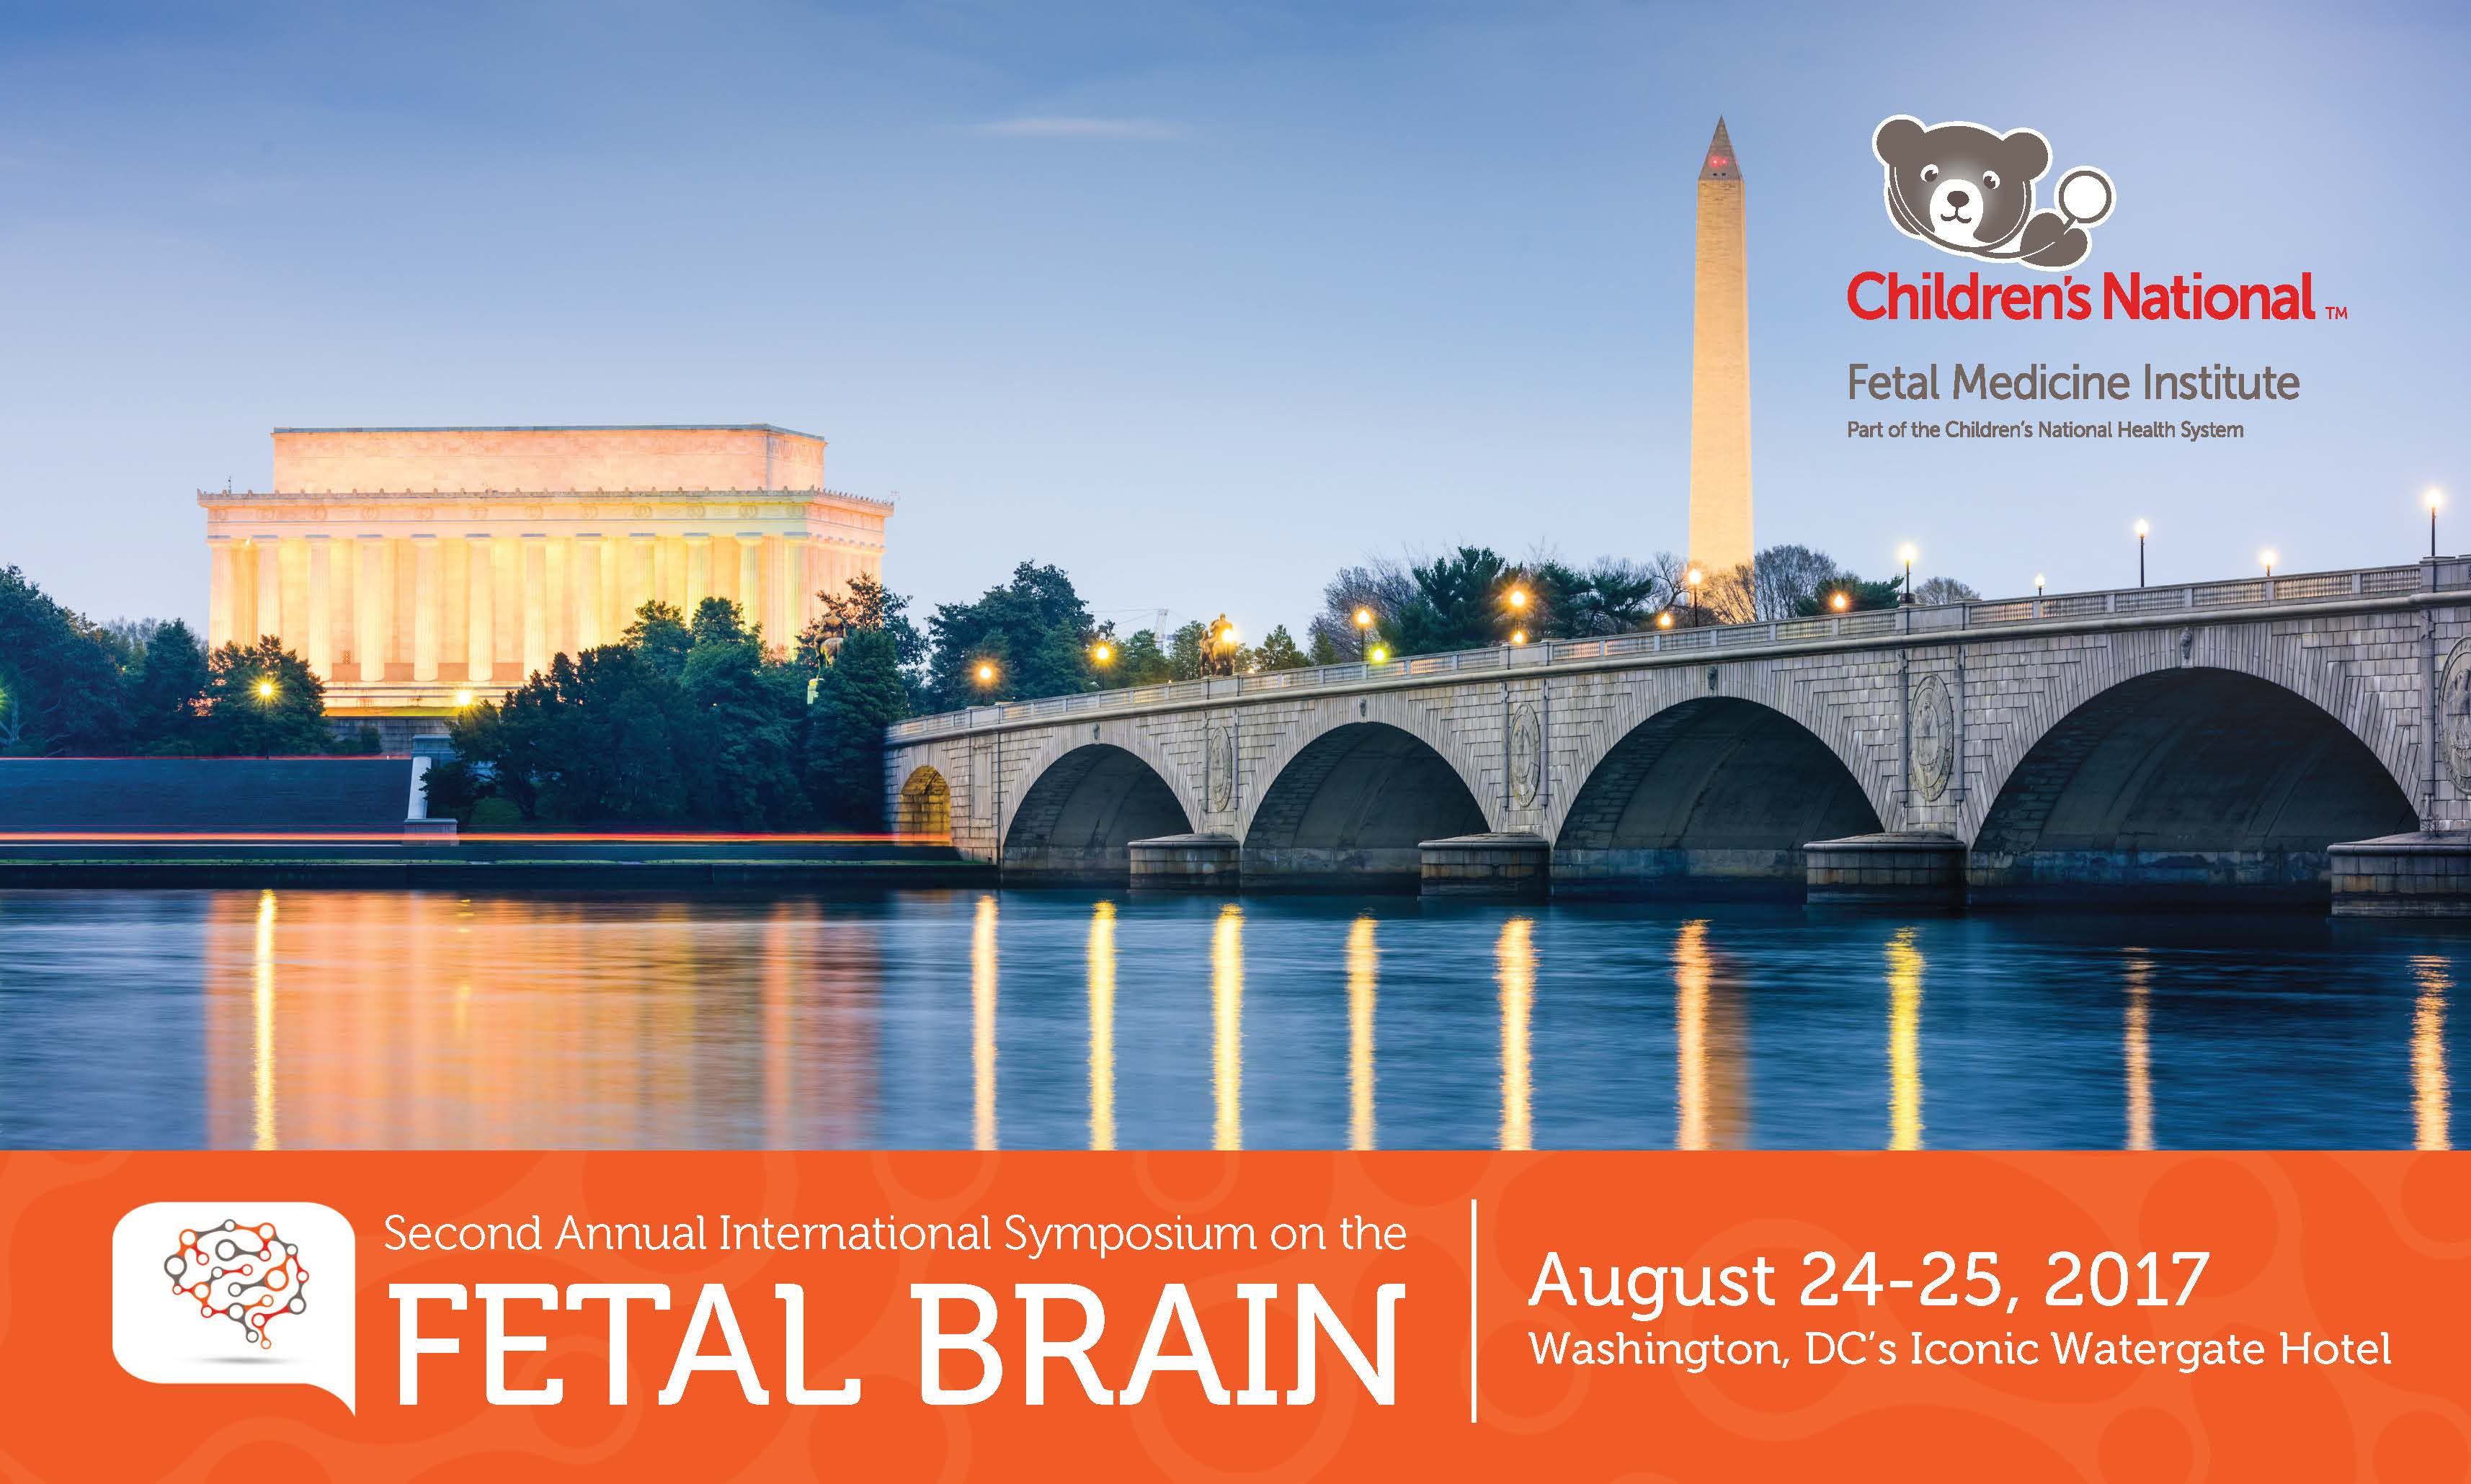 Second Annual International Symposium on the Fetal Brain